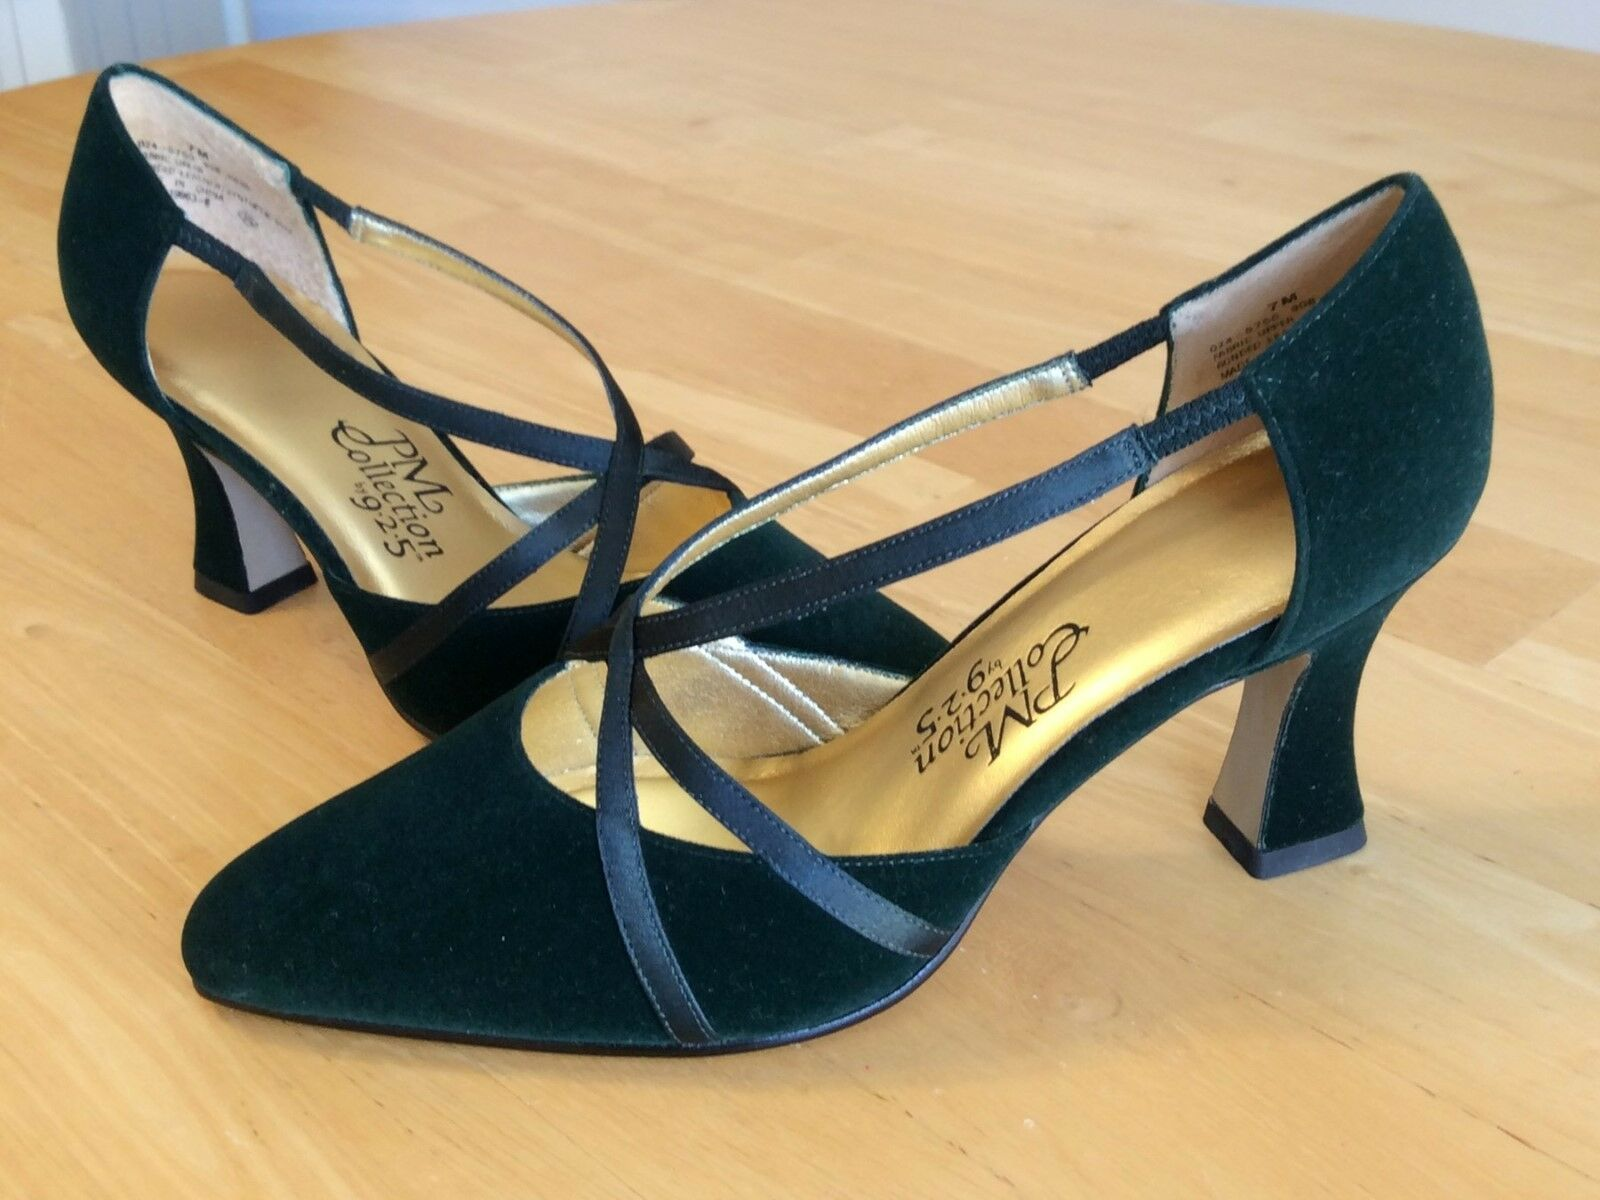 Women's 925 PM Shoes Collection By 925 Women's Forest Green Suede Heels Size 7M w/BOX NEW 04b092